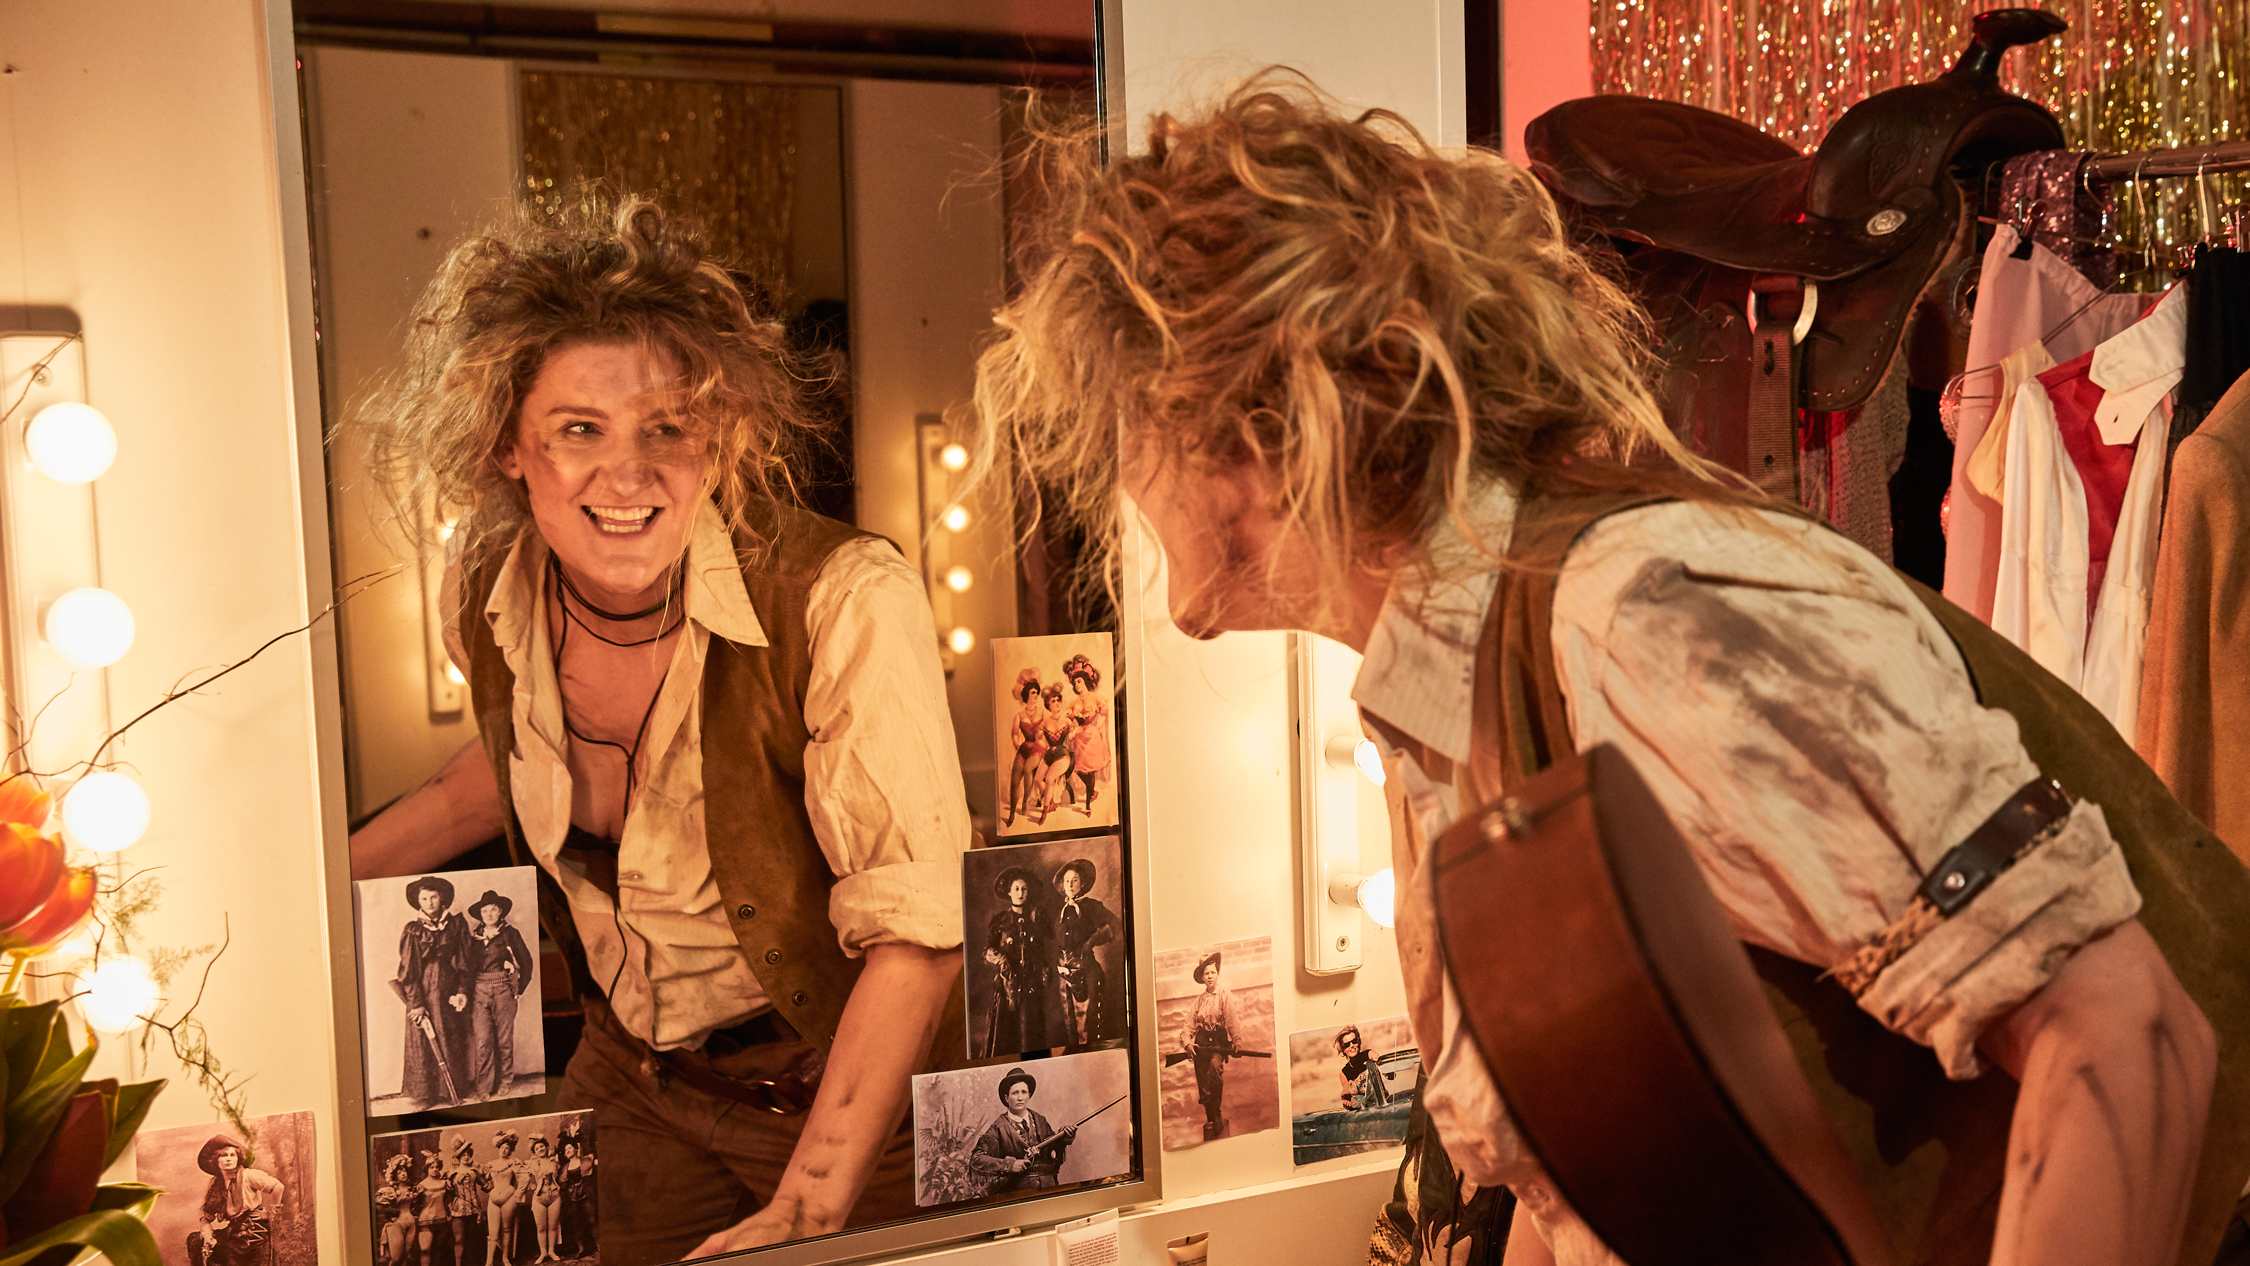 Win a VIP pass to Calamity Jane for you and three pardners